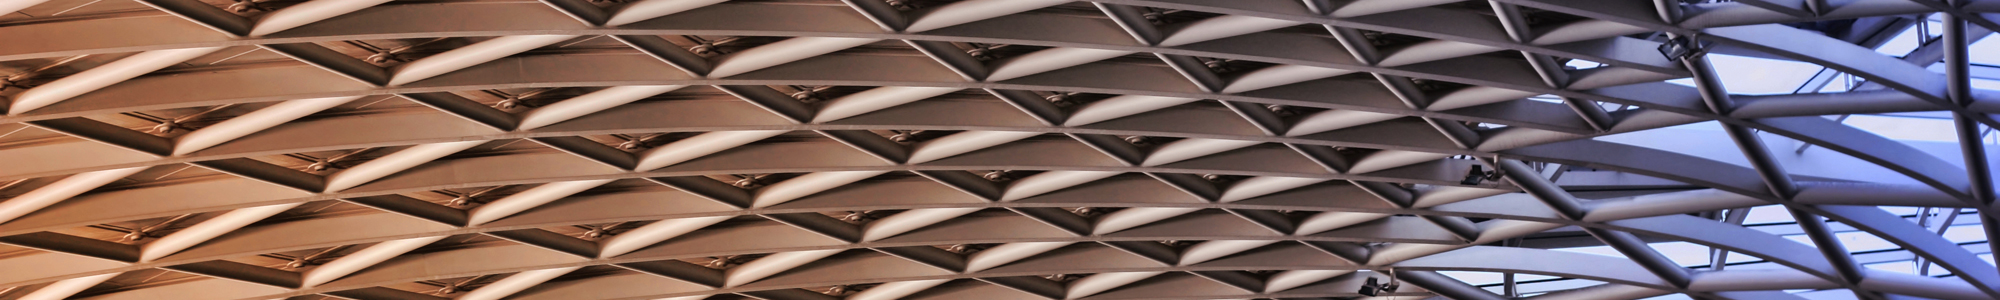 Abstract picture of roof